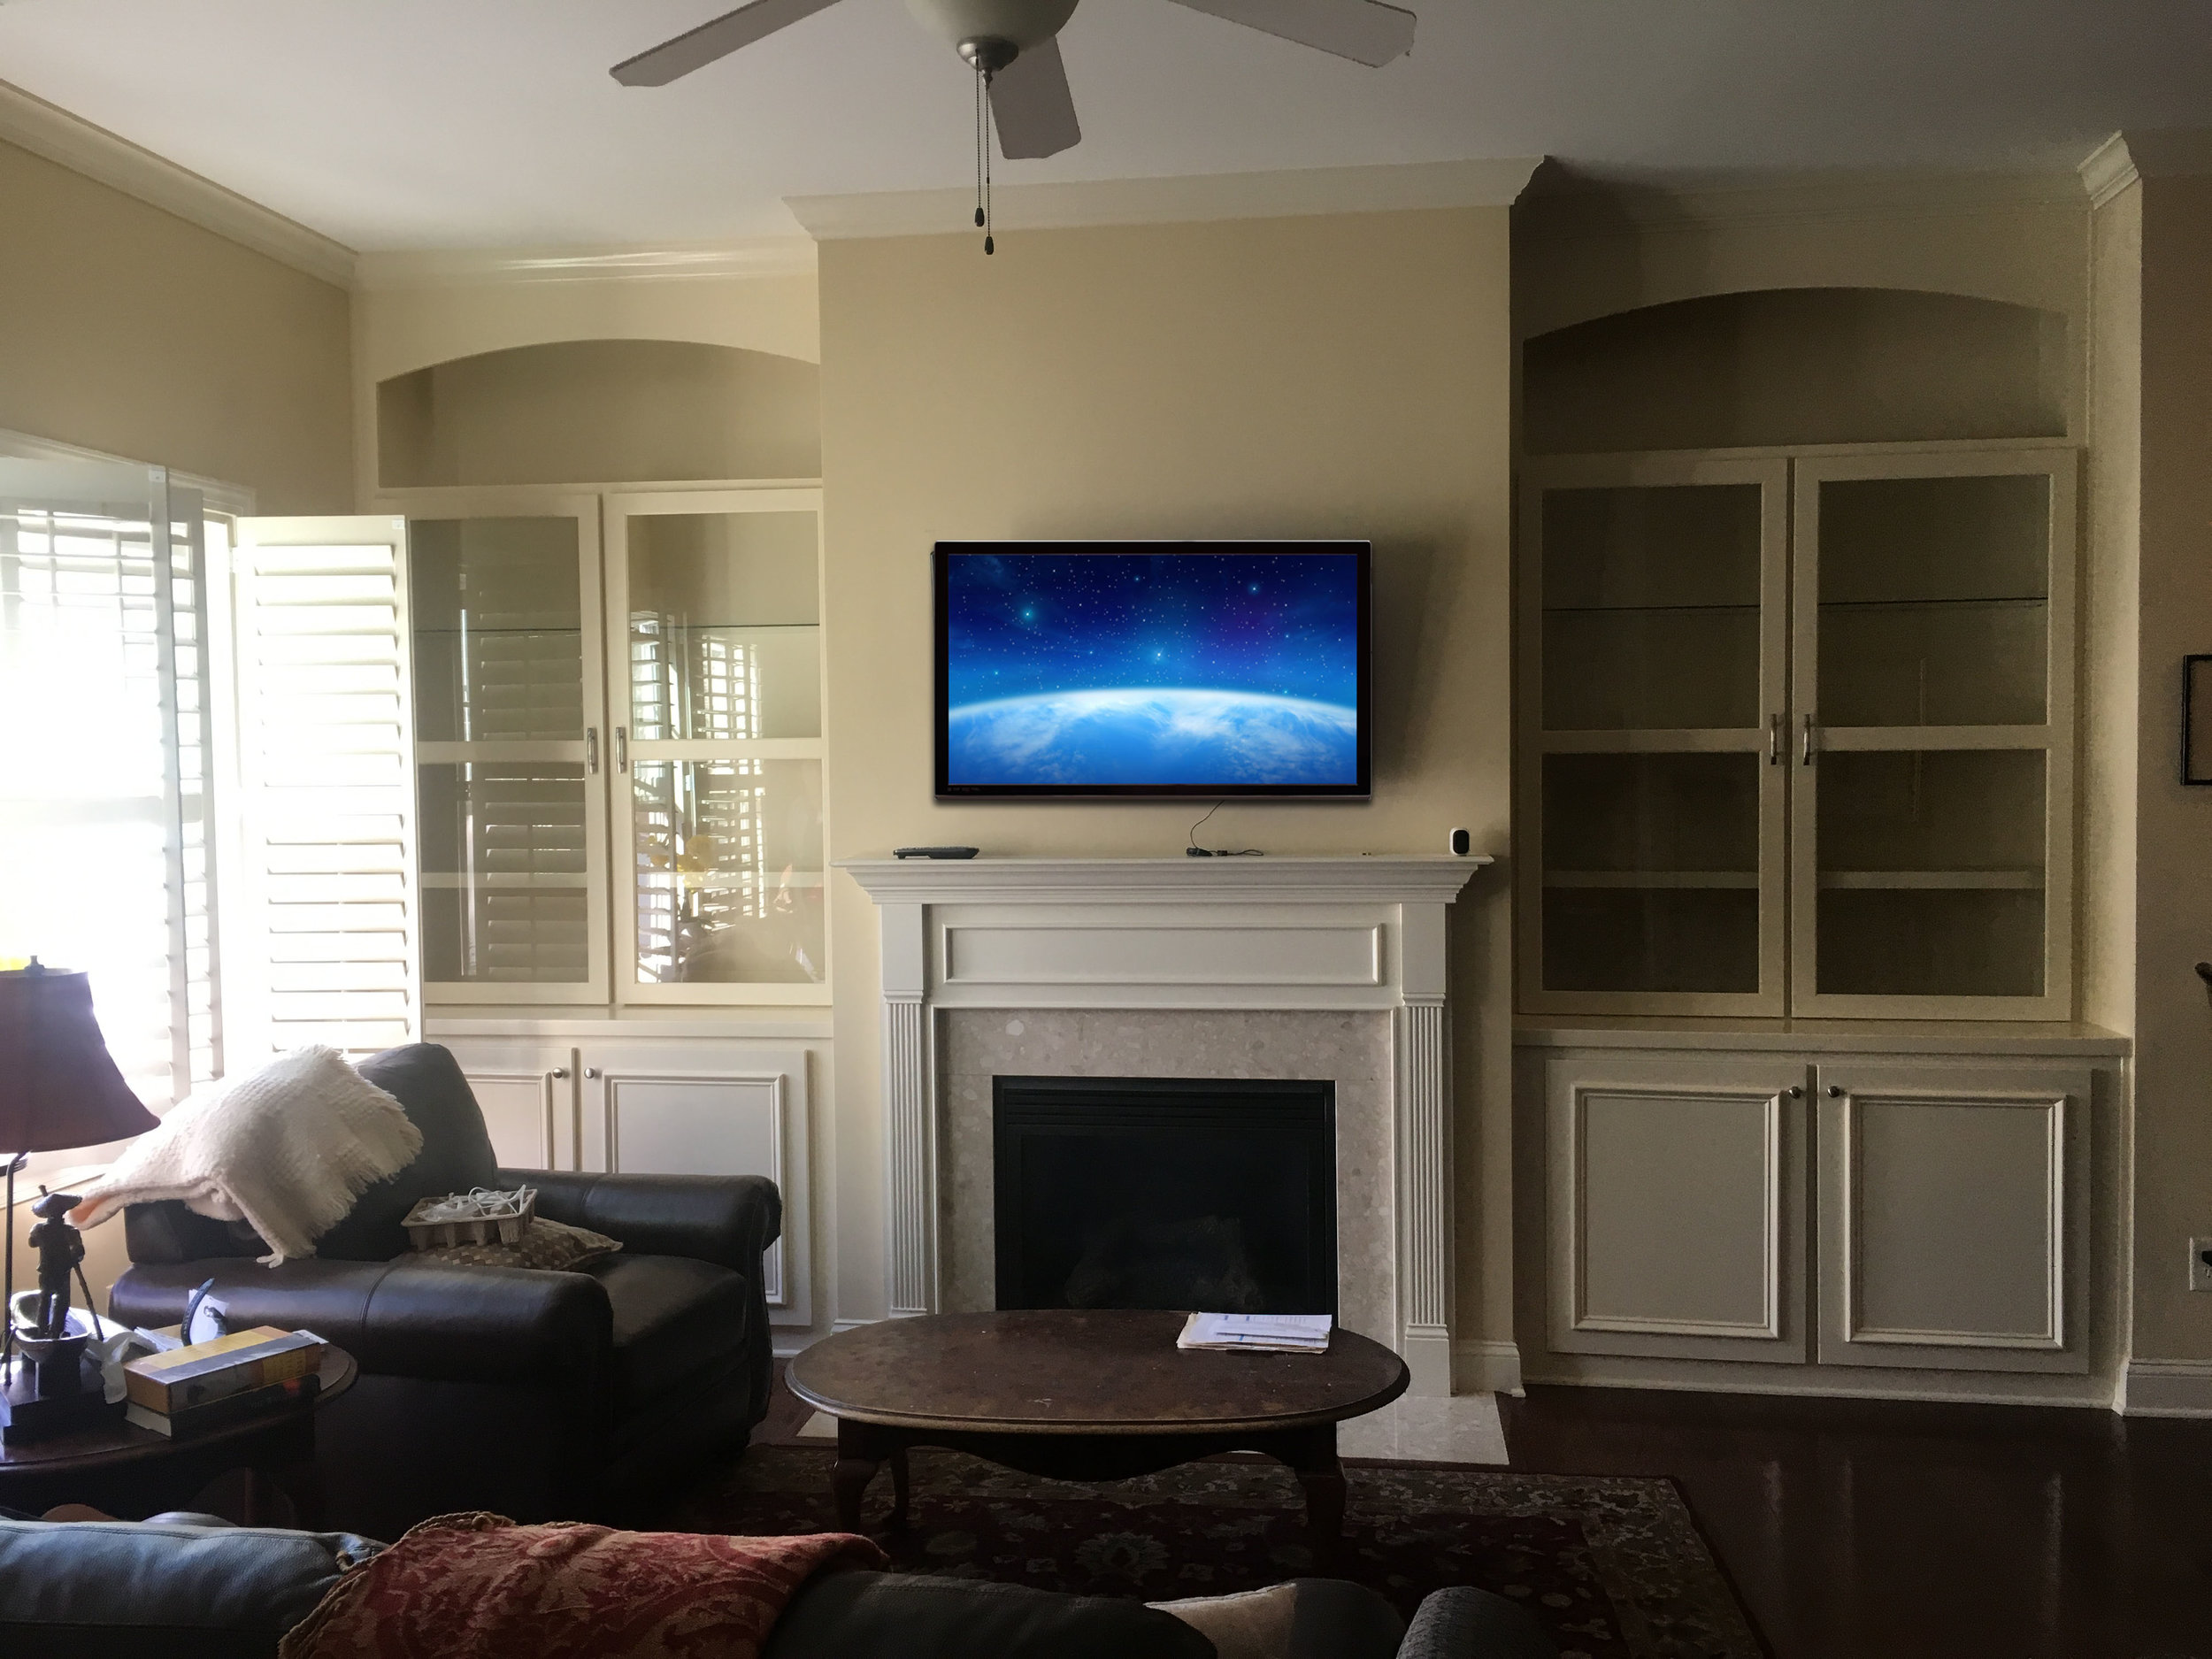 Fireplace Built-Ins with Applied Panel Detail Doors, Arch Detail, Glass Adjustable Shelves, Glass Doors, and Crown